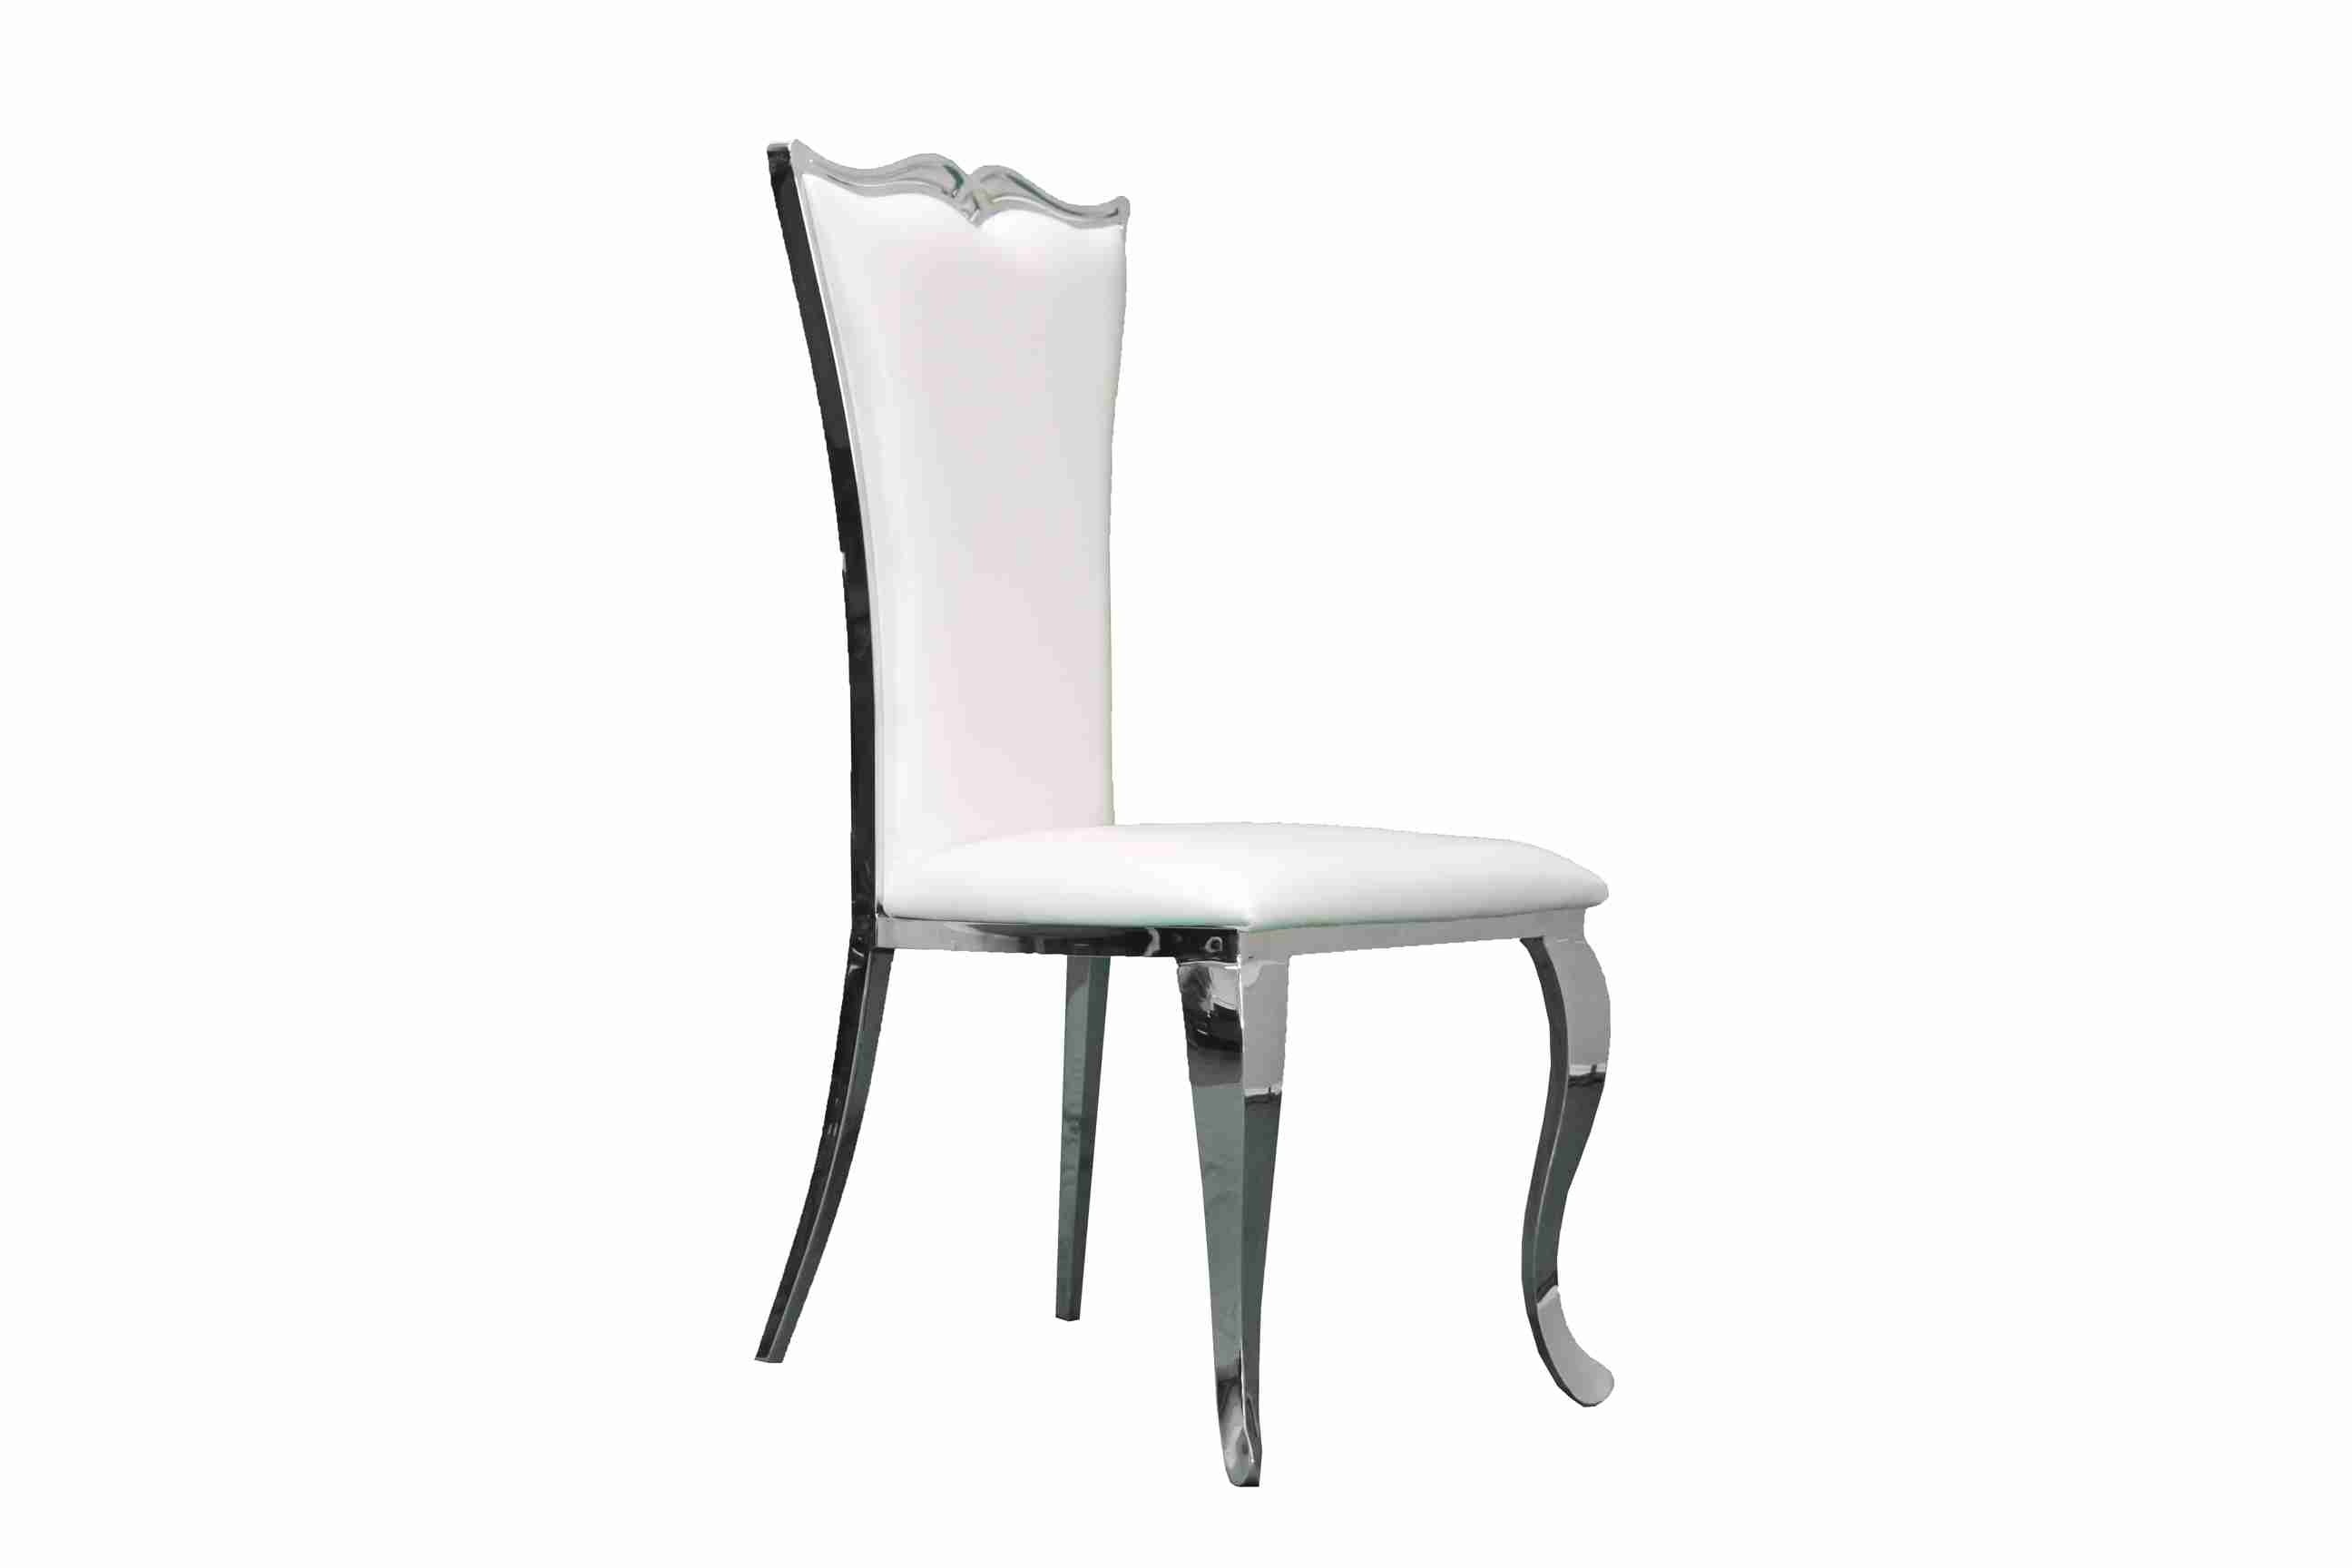 Side Chair PU Leather in Metallic White (Set of 2) -UH-981-WH